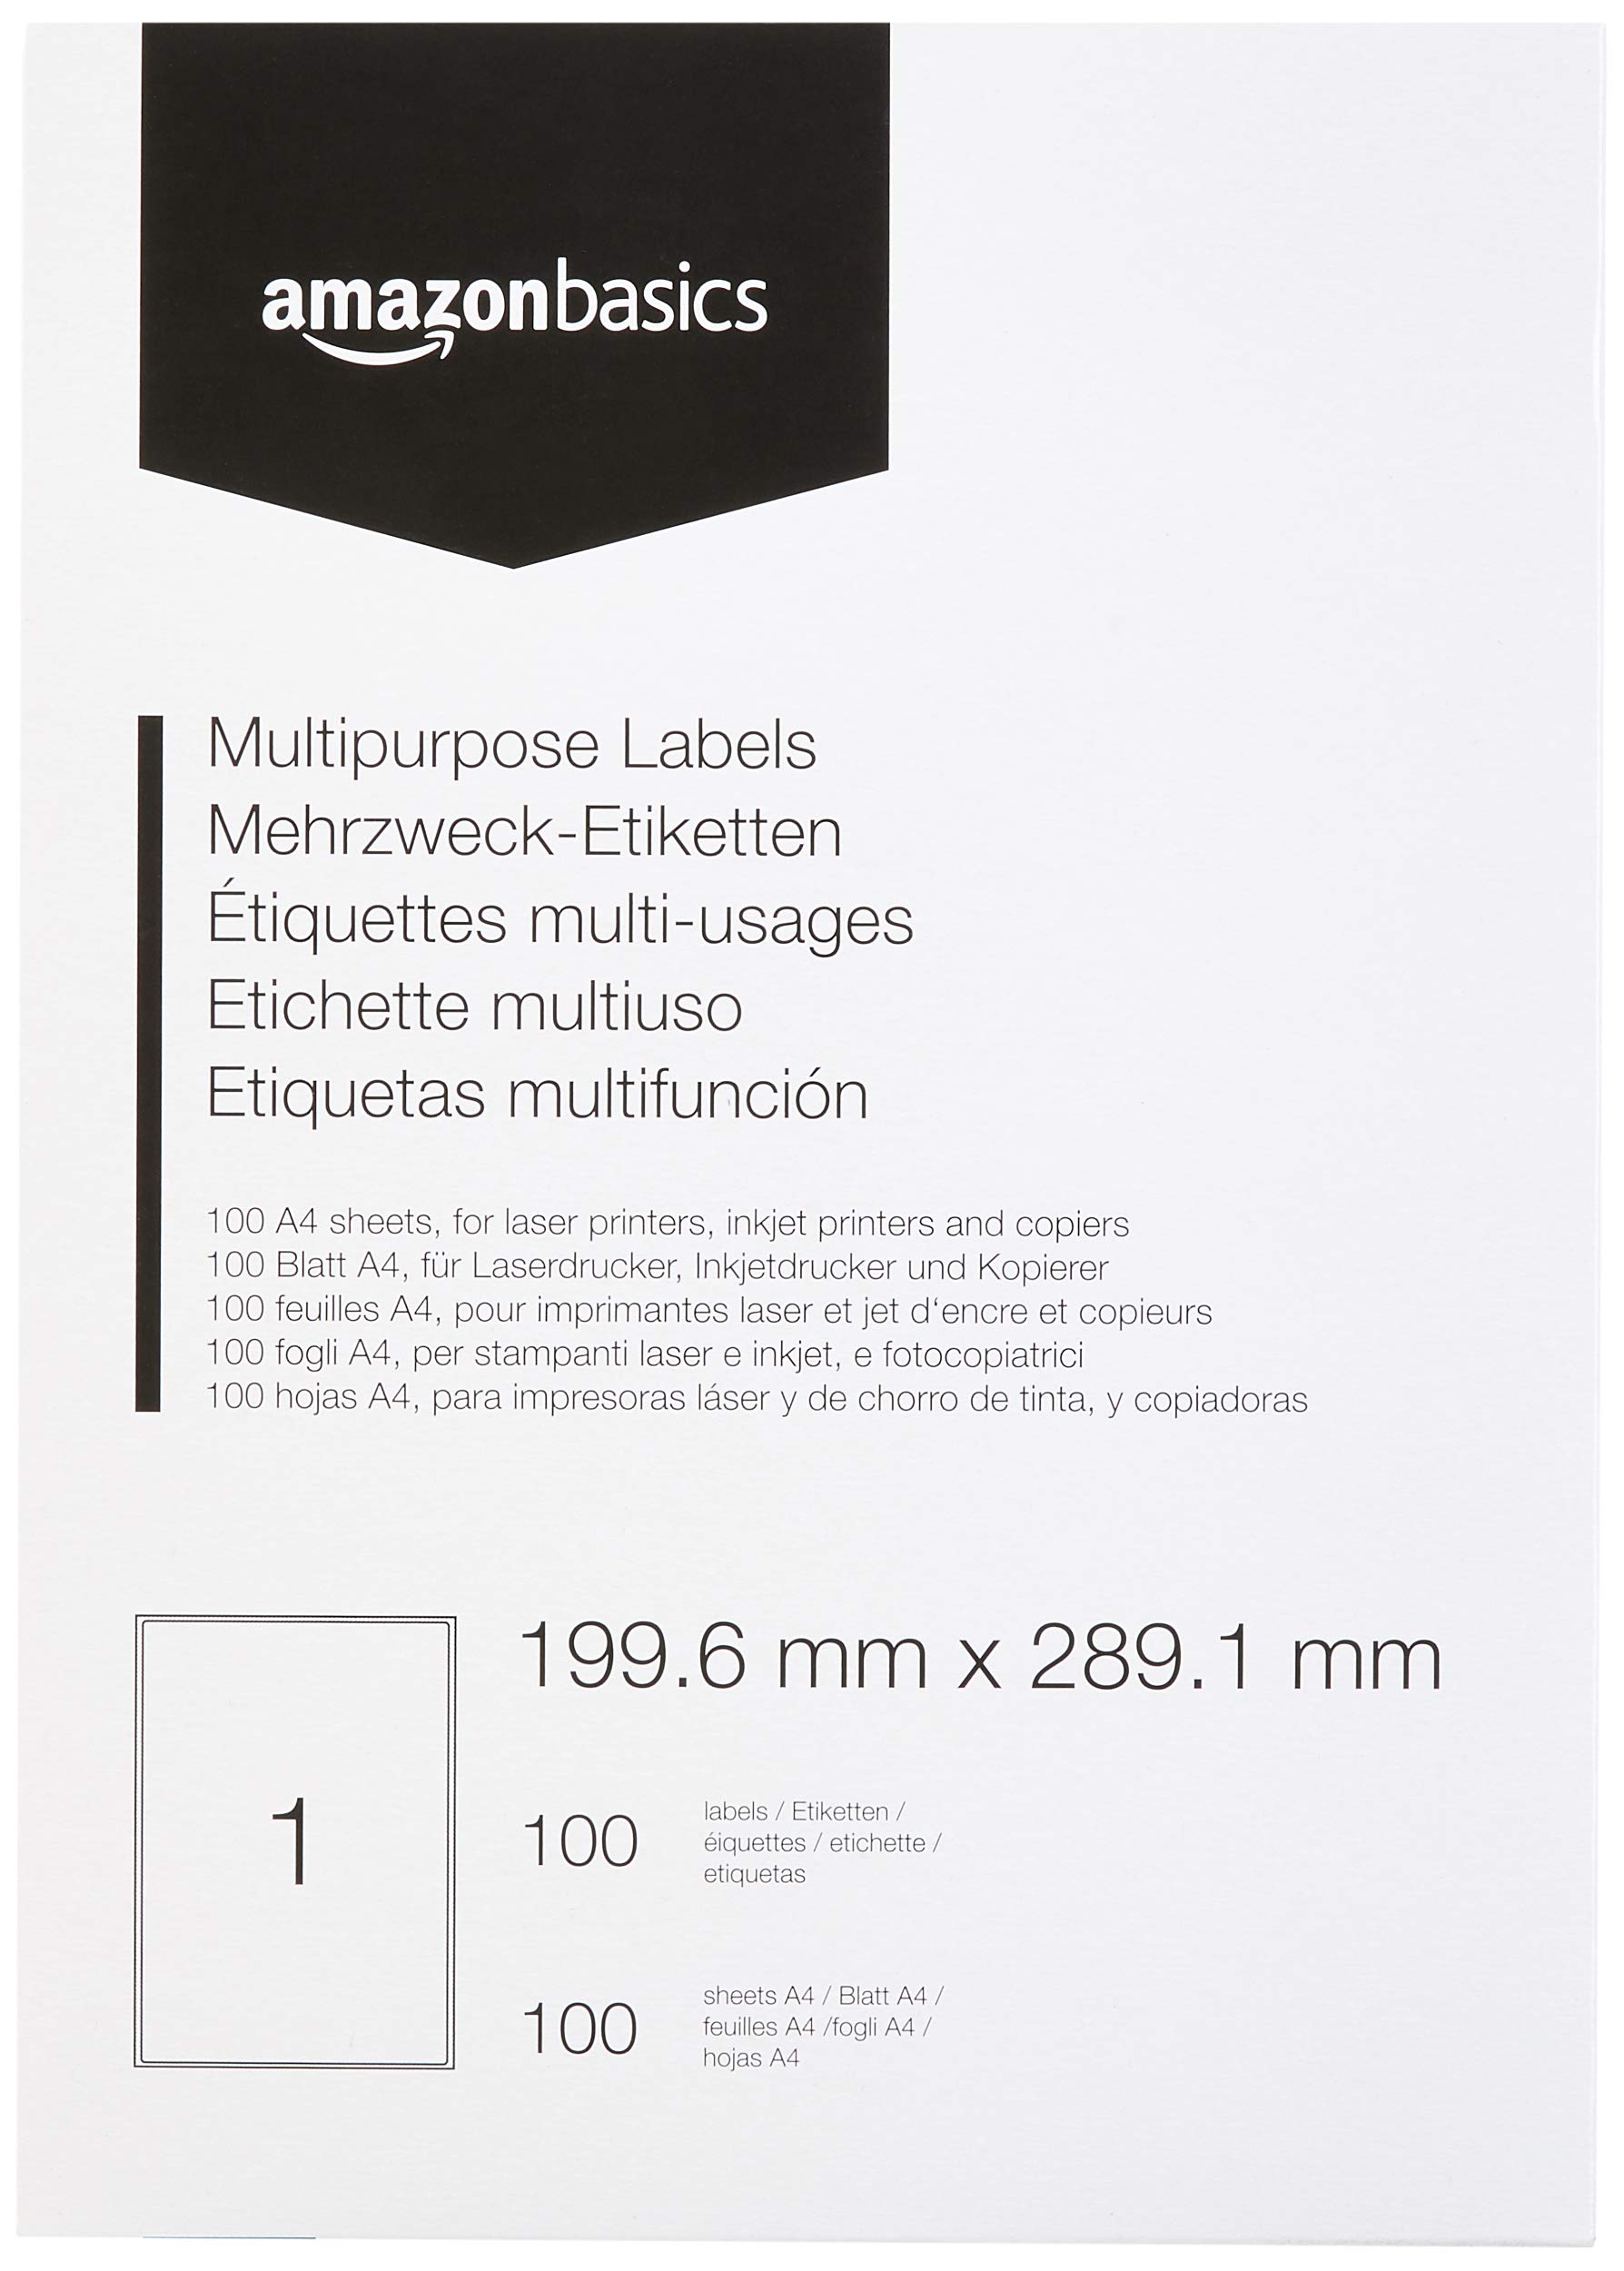 1 Label For Ink Laser Jet Printers and Copiers Packitsafe 1000 Sheets of 1 Label Per sheet A4 self adhesive Address Labels